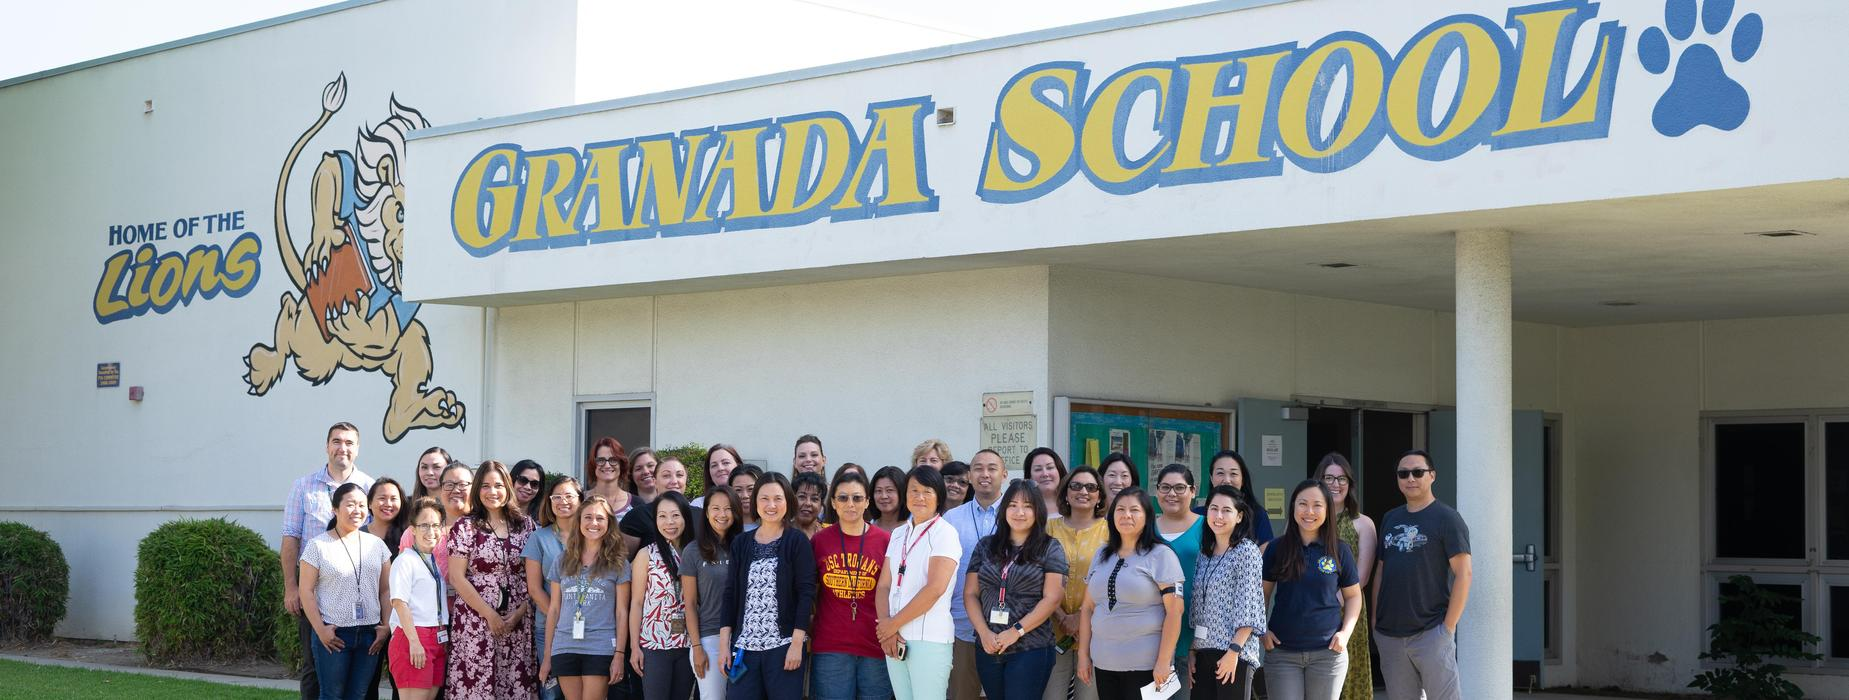 Granada Faculty and Staff